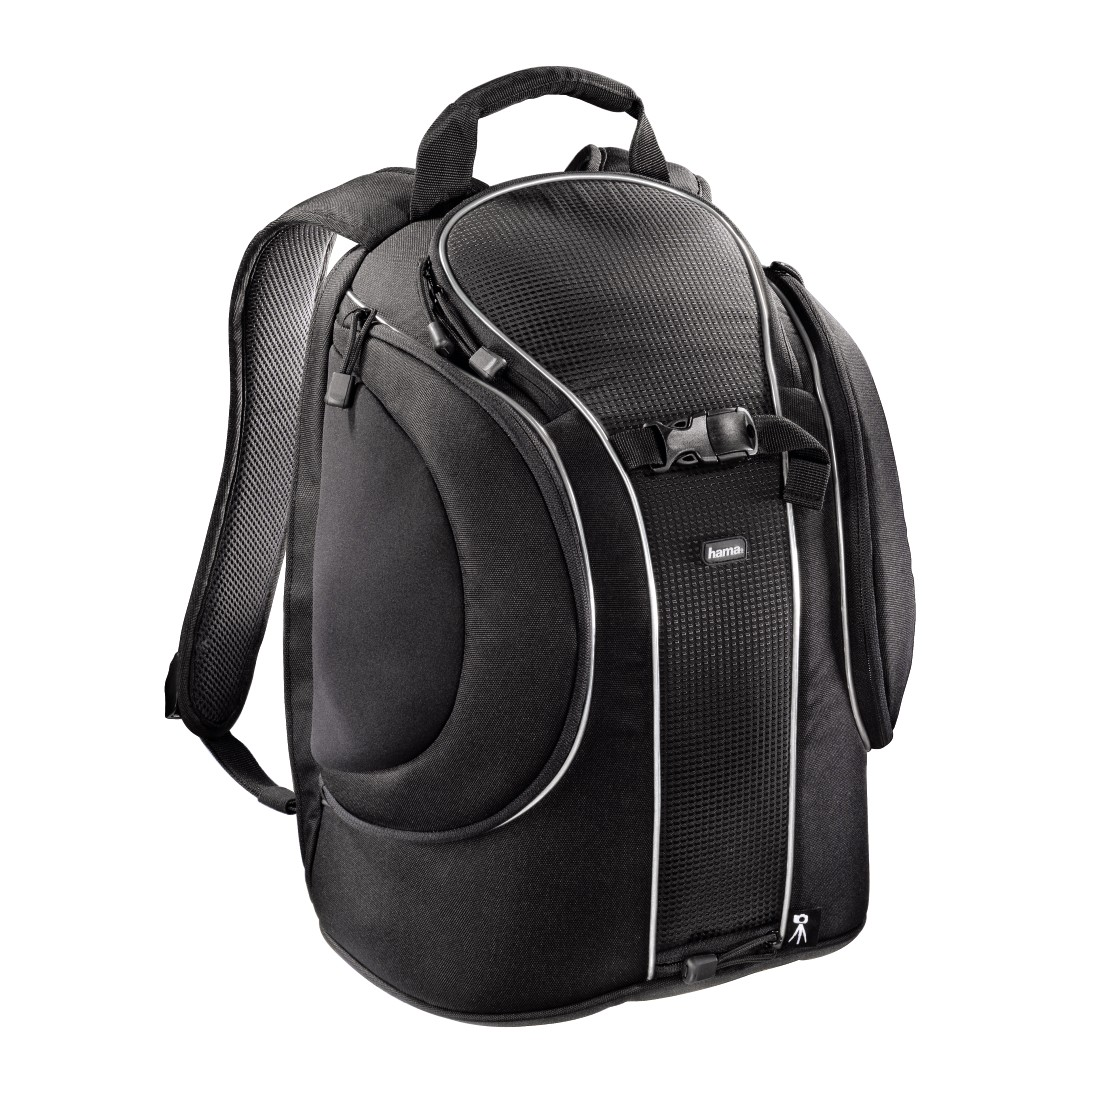 abx3 High-Res Image 3 - Hama, Daytour Camera Backpack, 180, black